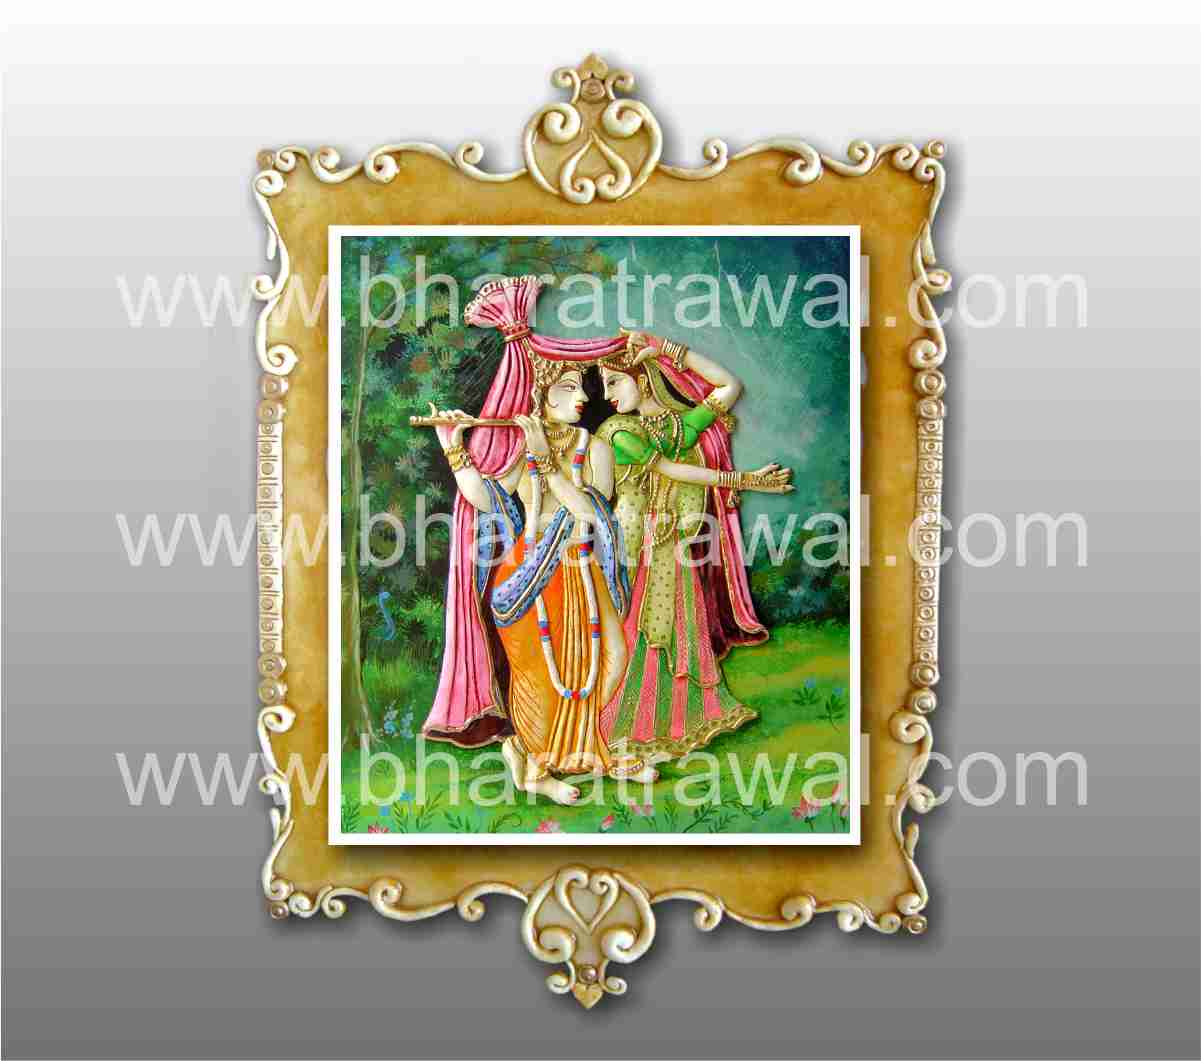 Mural art by muralguru bharat rawal ceramic murals a for Clay mural designs